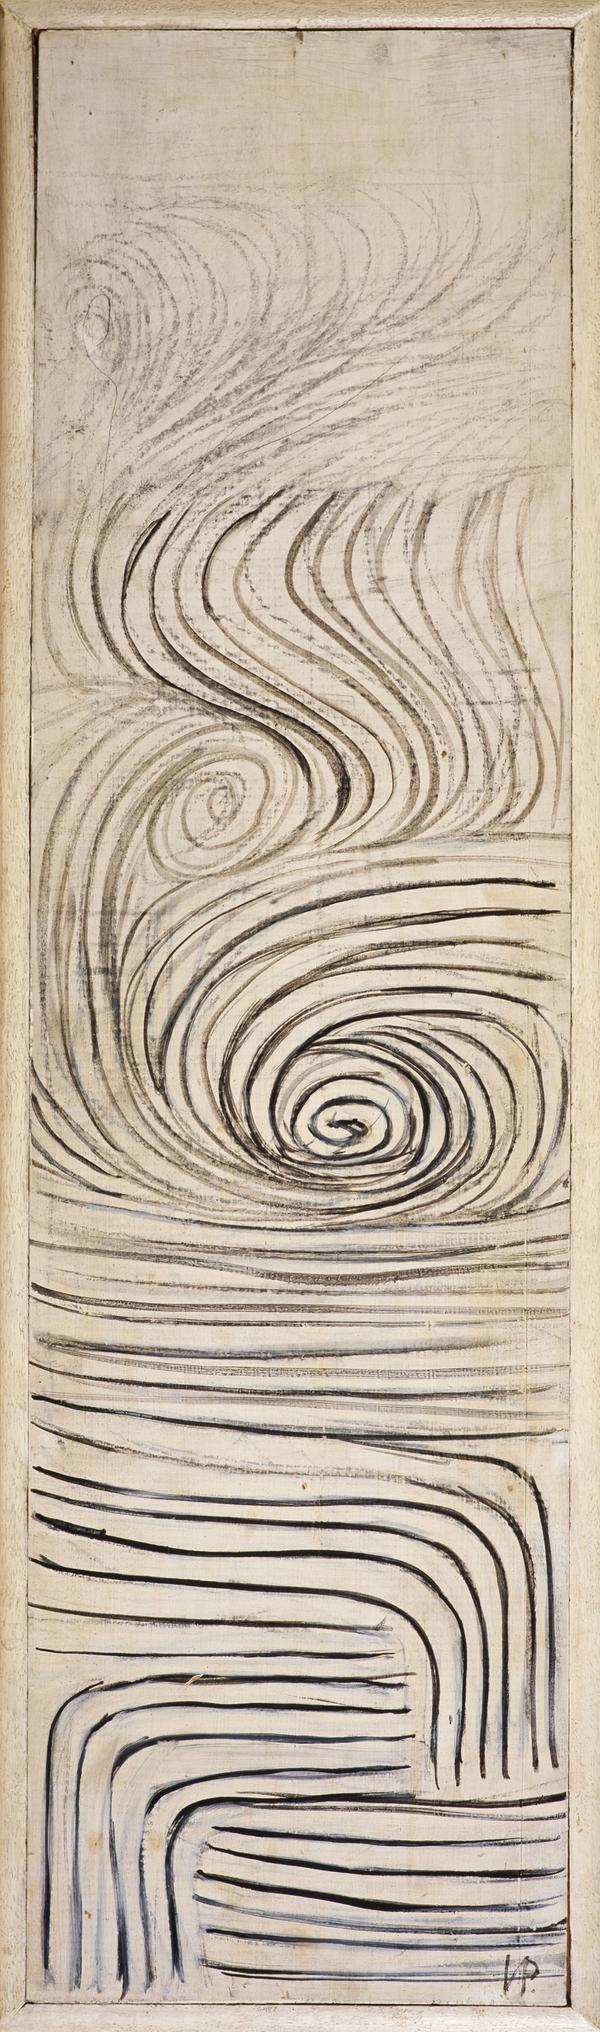 Spiral Motif (Subjective Landscape) in Black and White (1951)